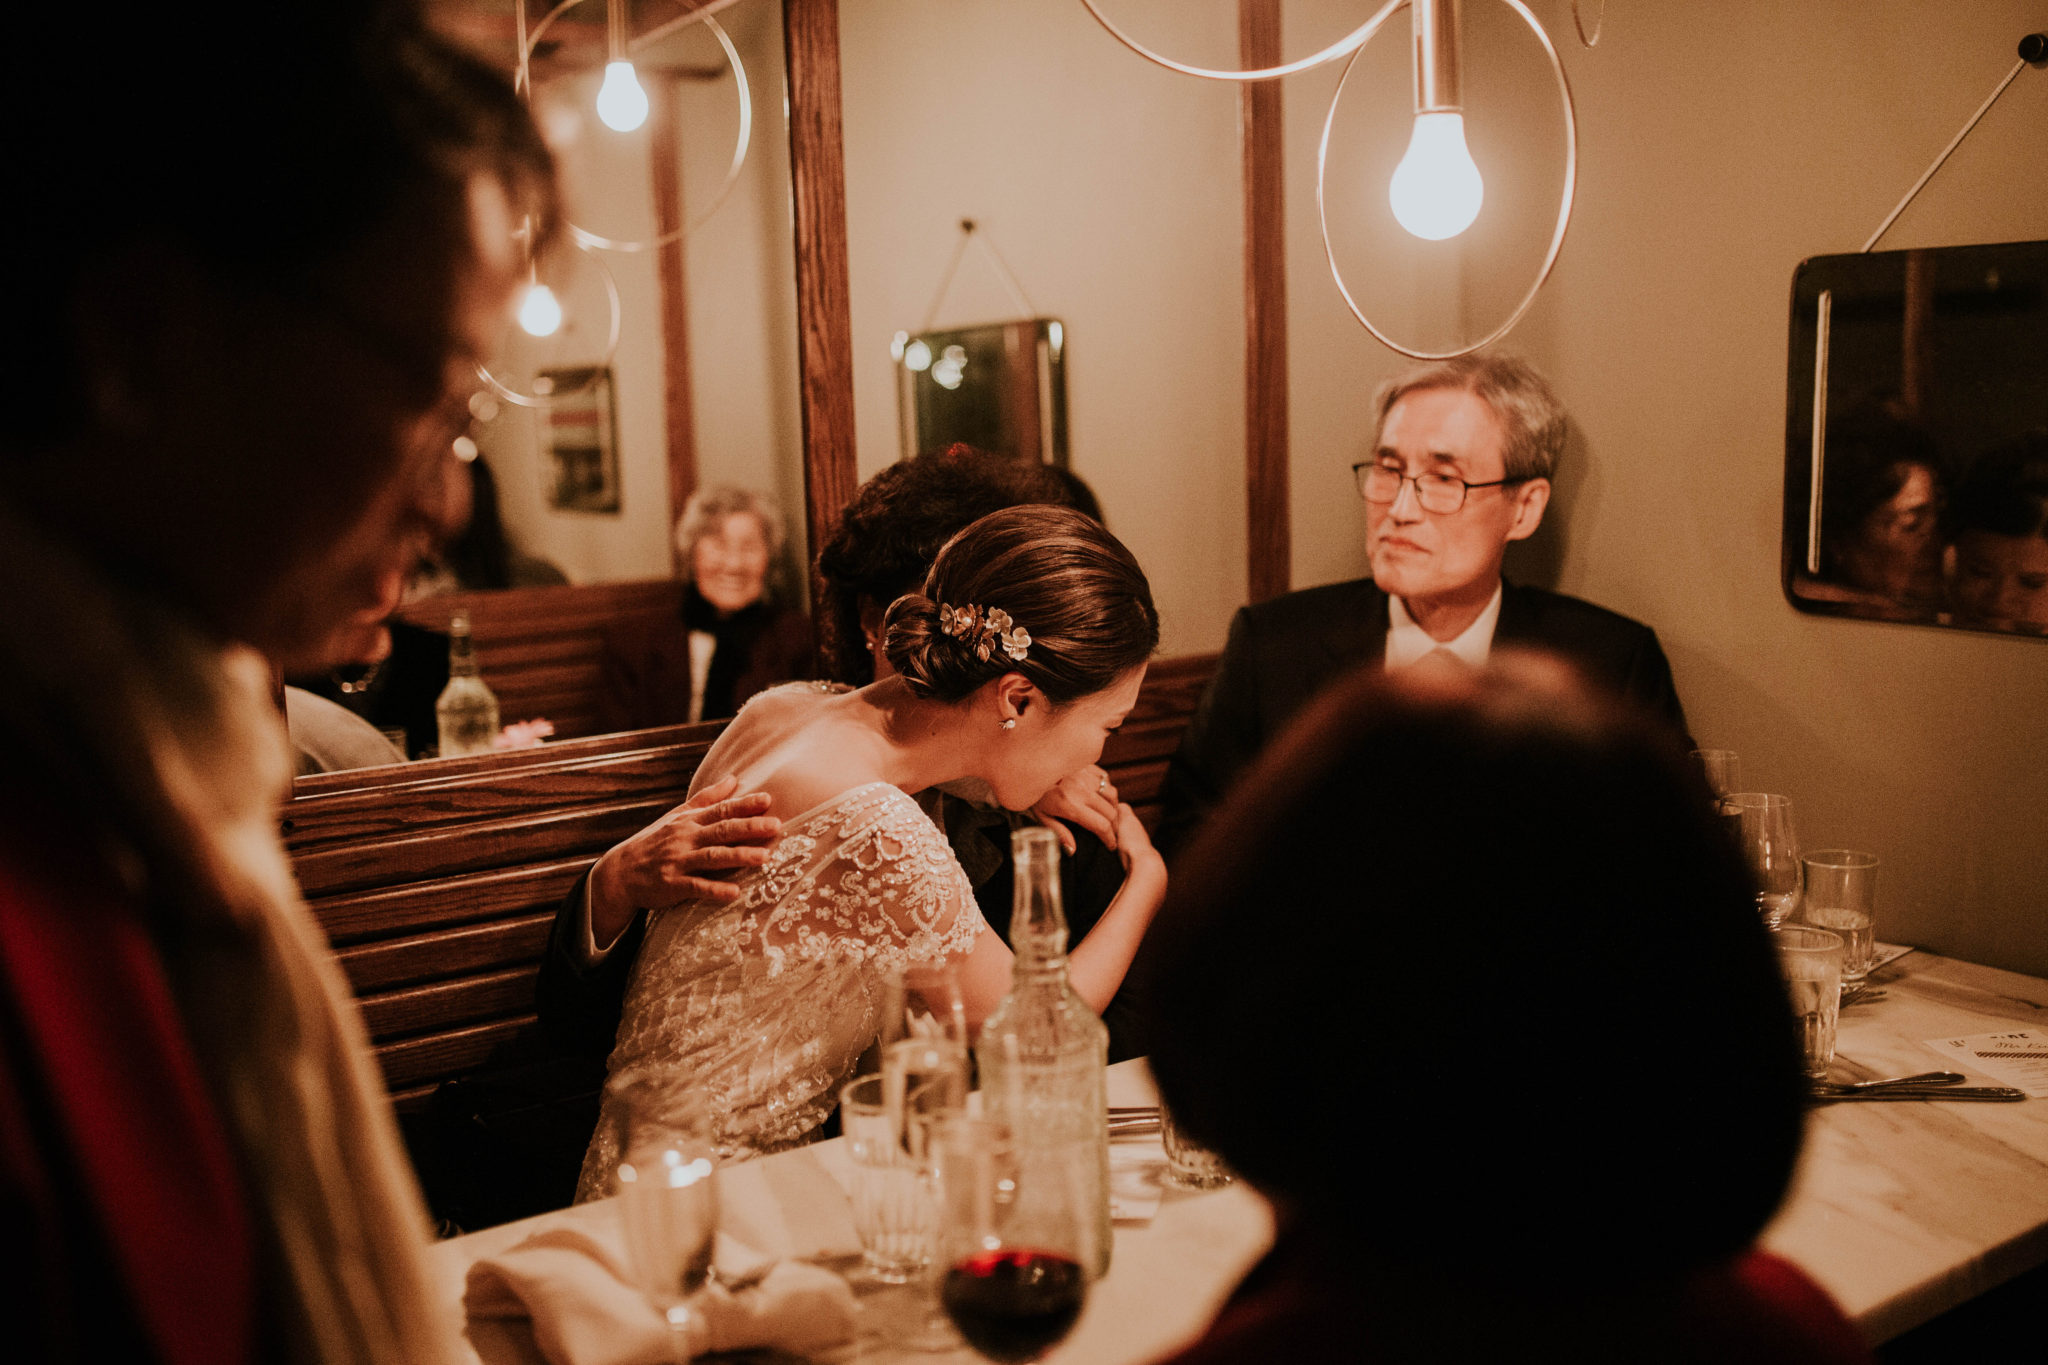 brooklyn-nyc-wedding-photographer-608